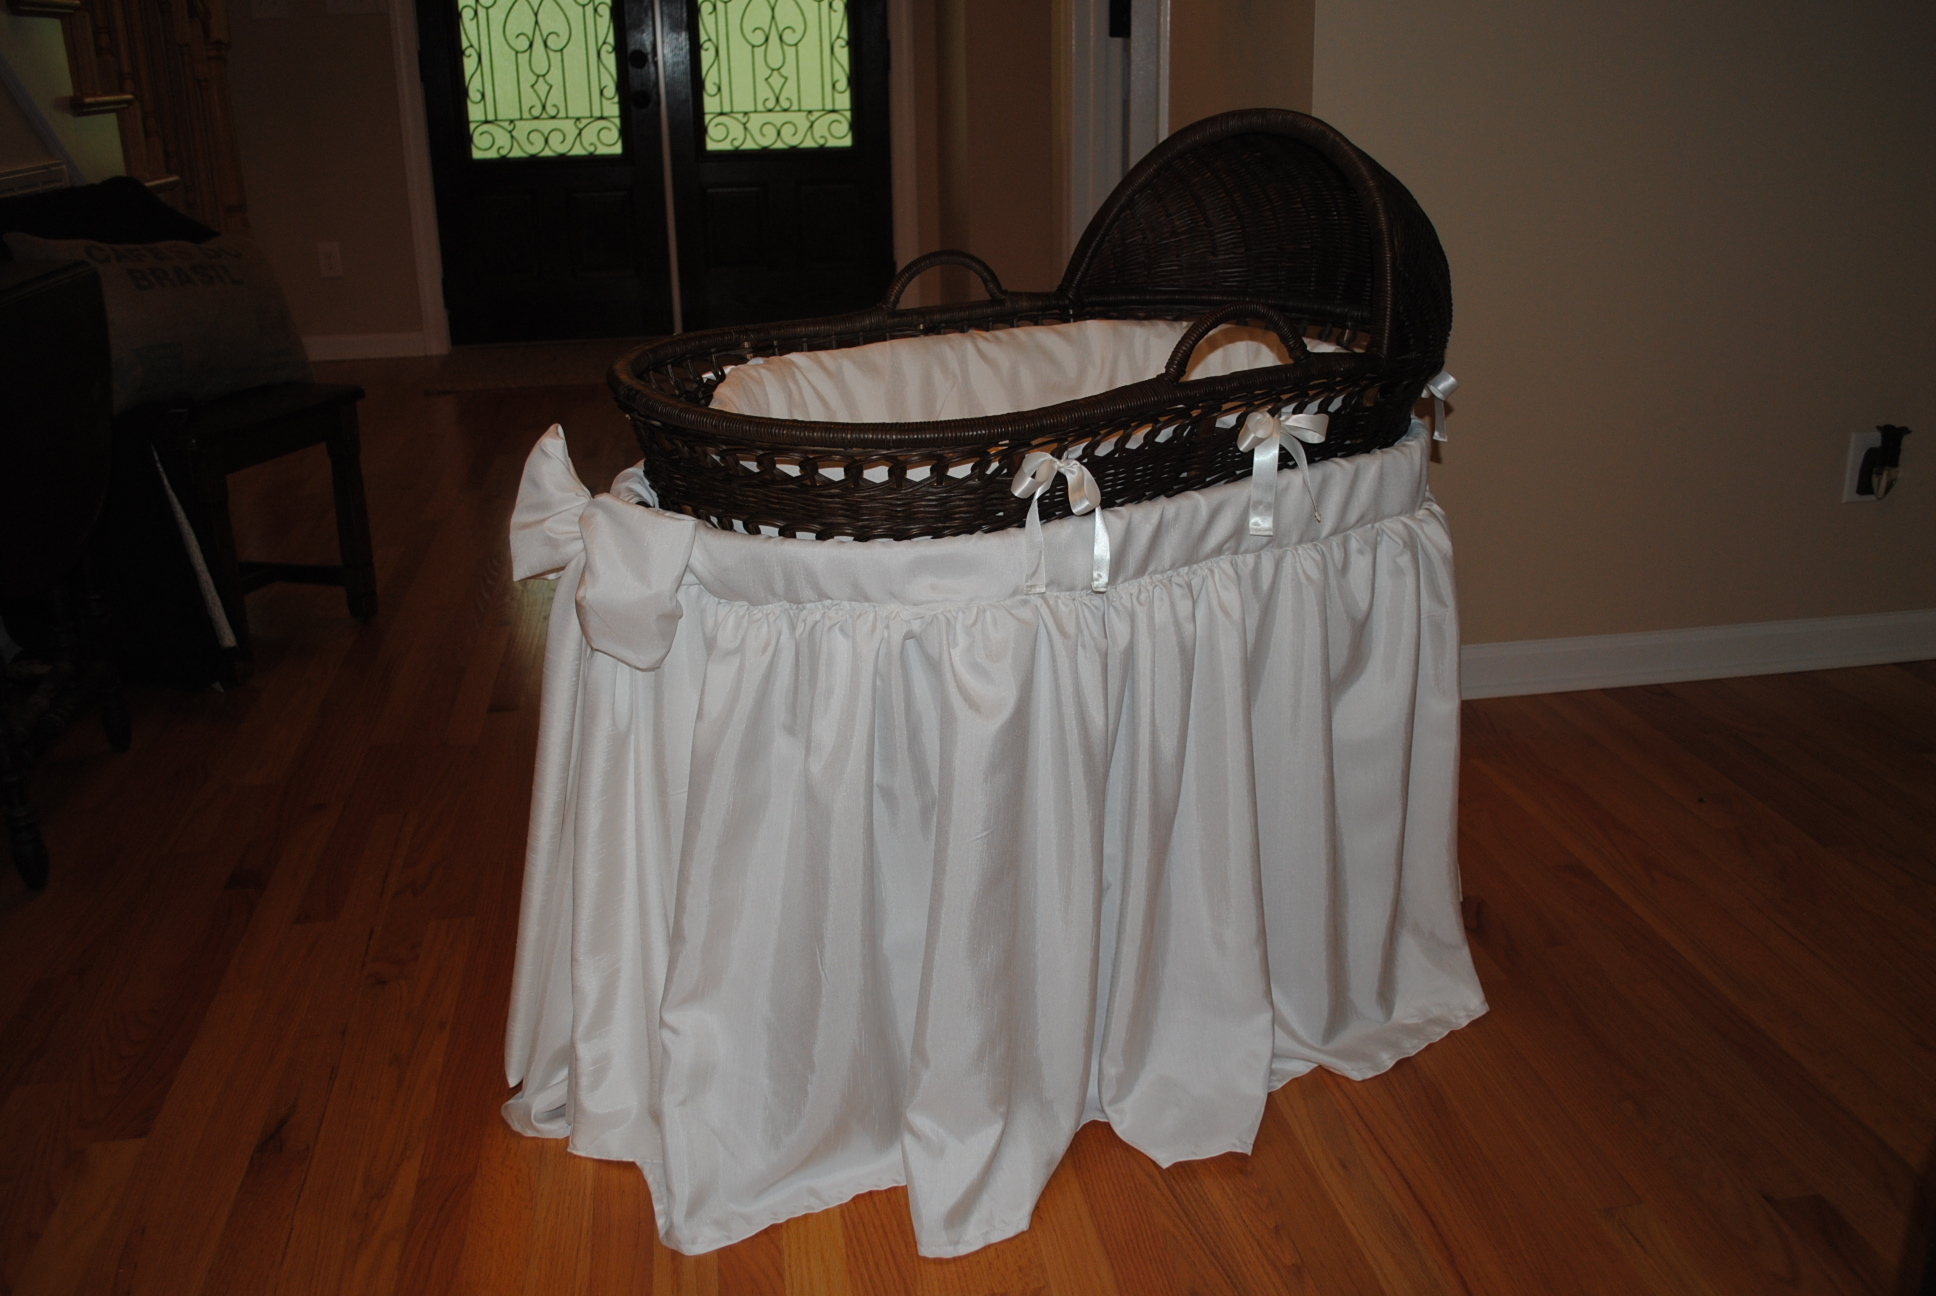 Baby Bassinet Linen Bassinet Bedding For Less Going Home